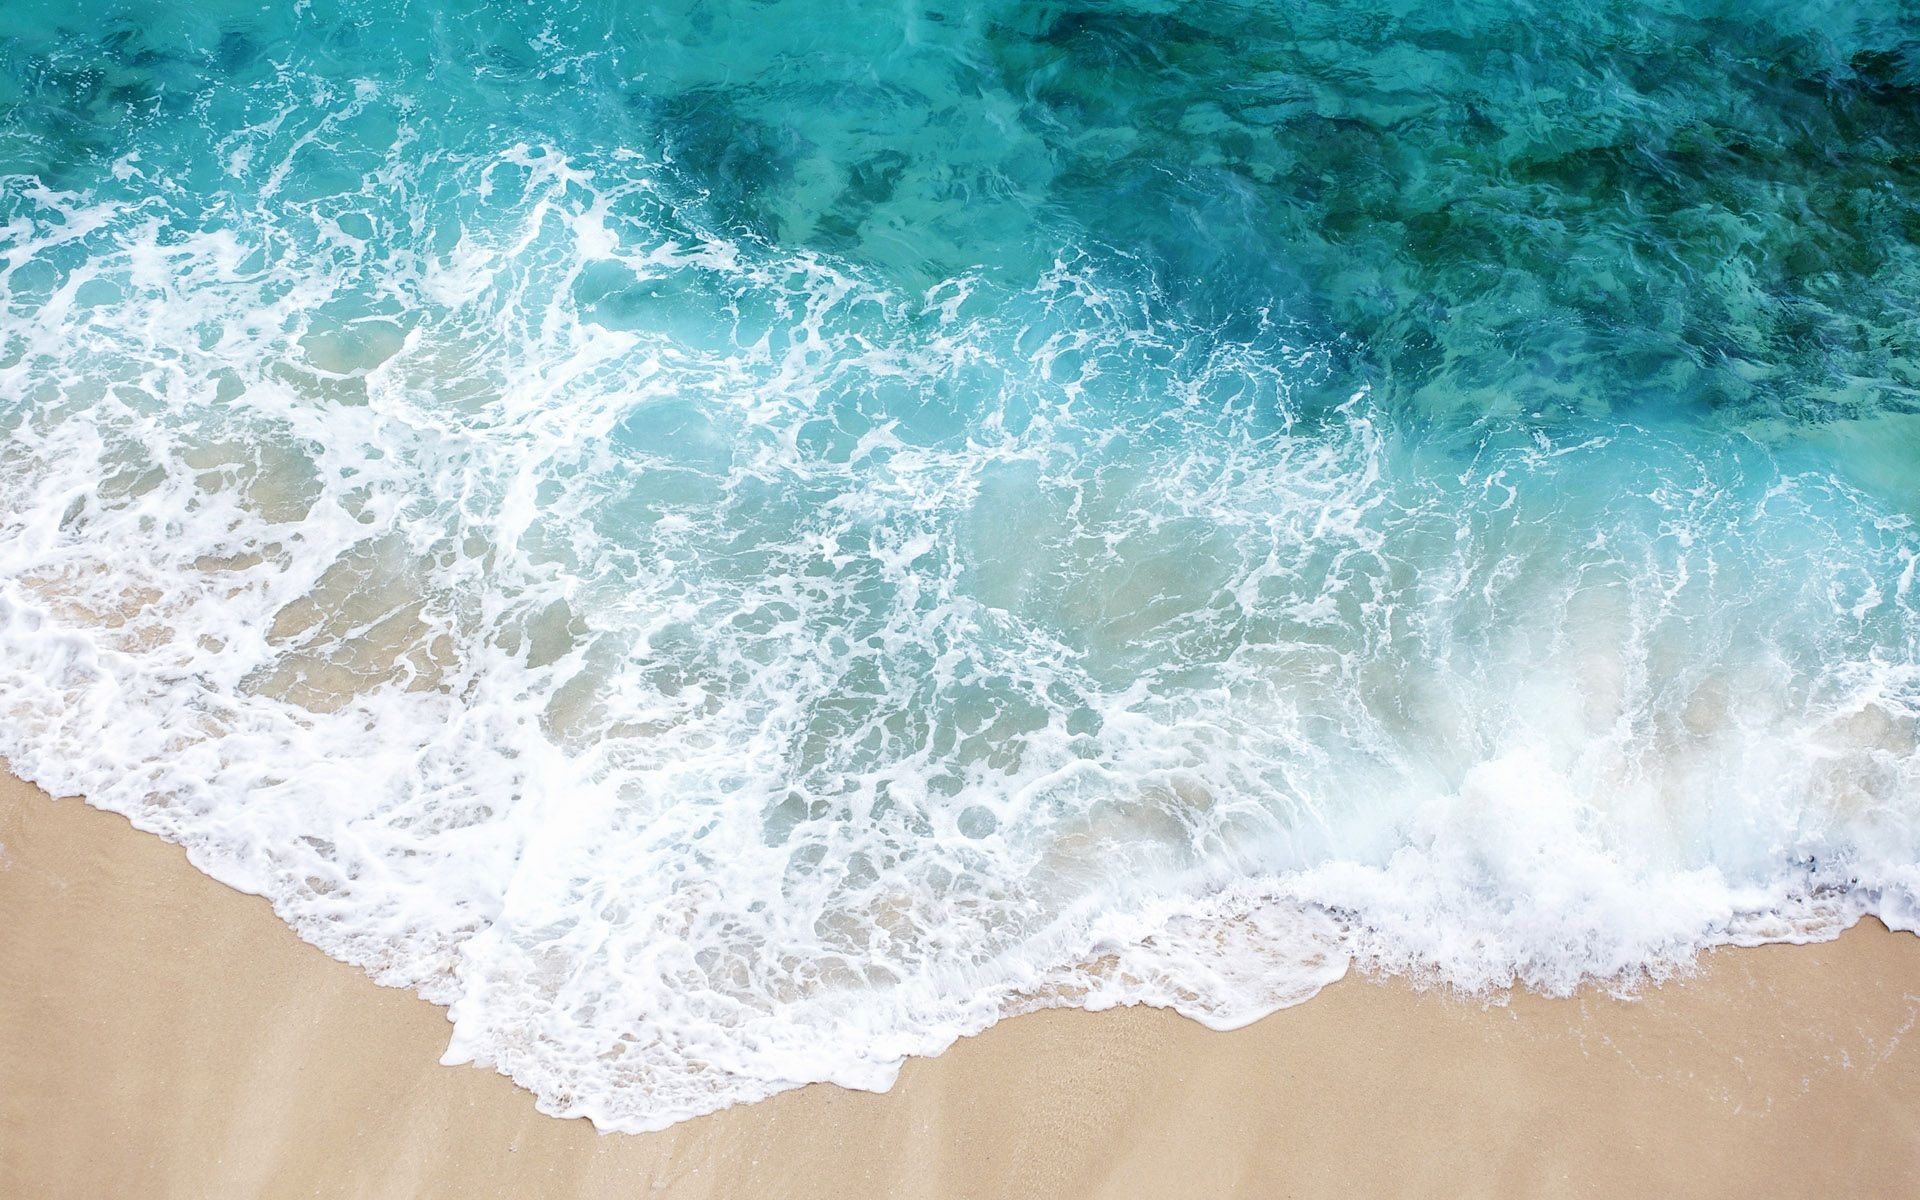 Download Tumblr Beach Waves Backgrounds 7096 px High